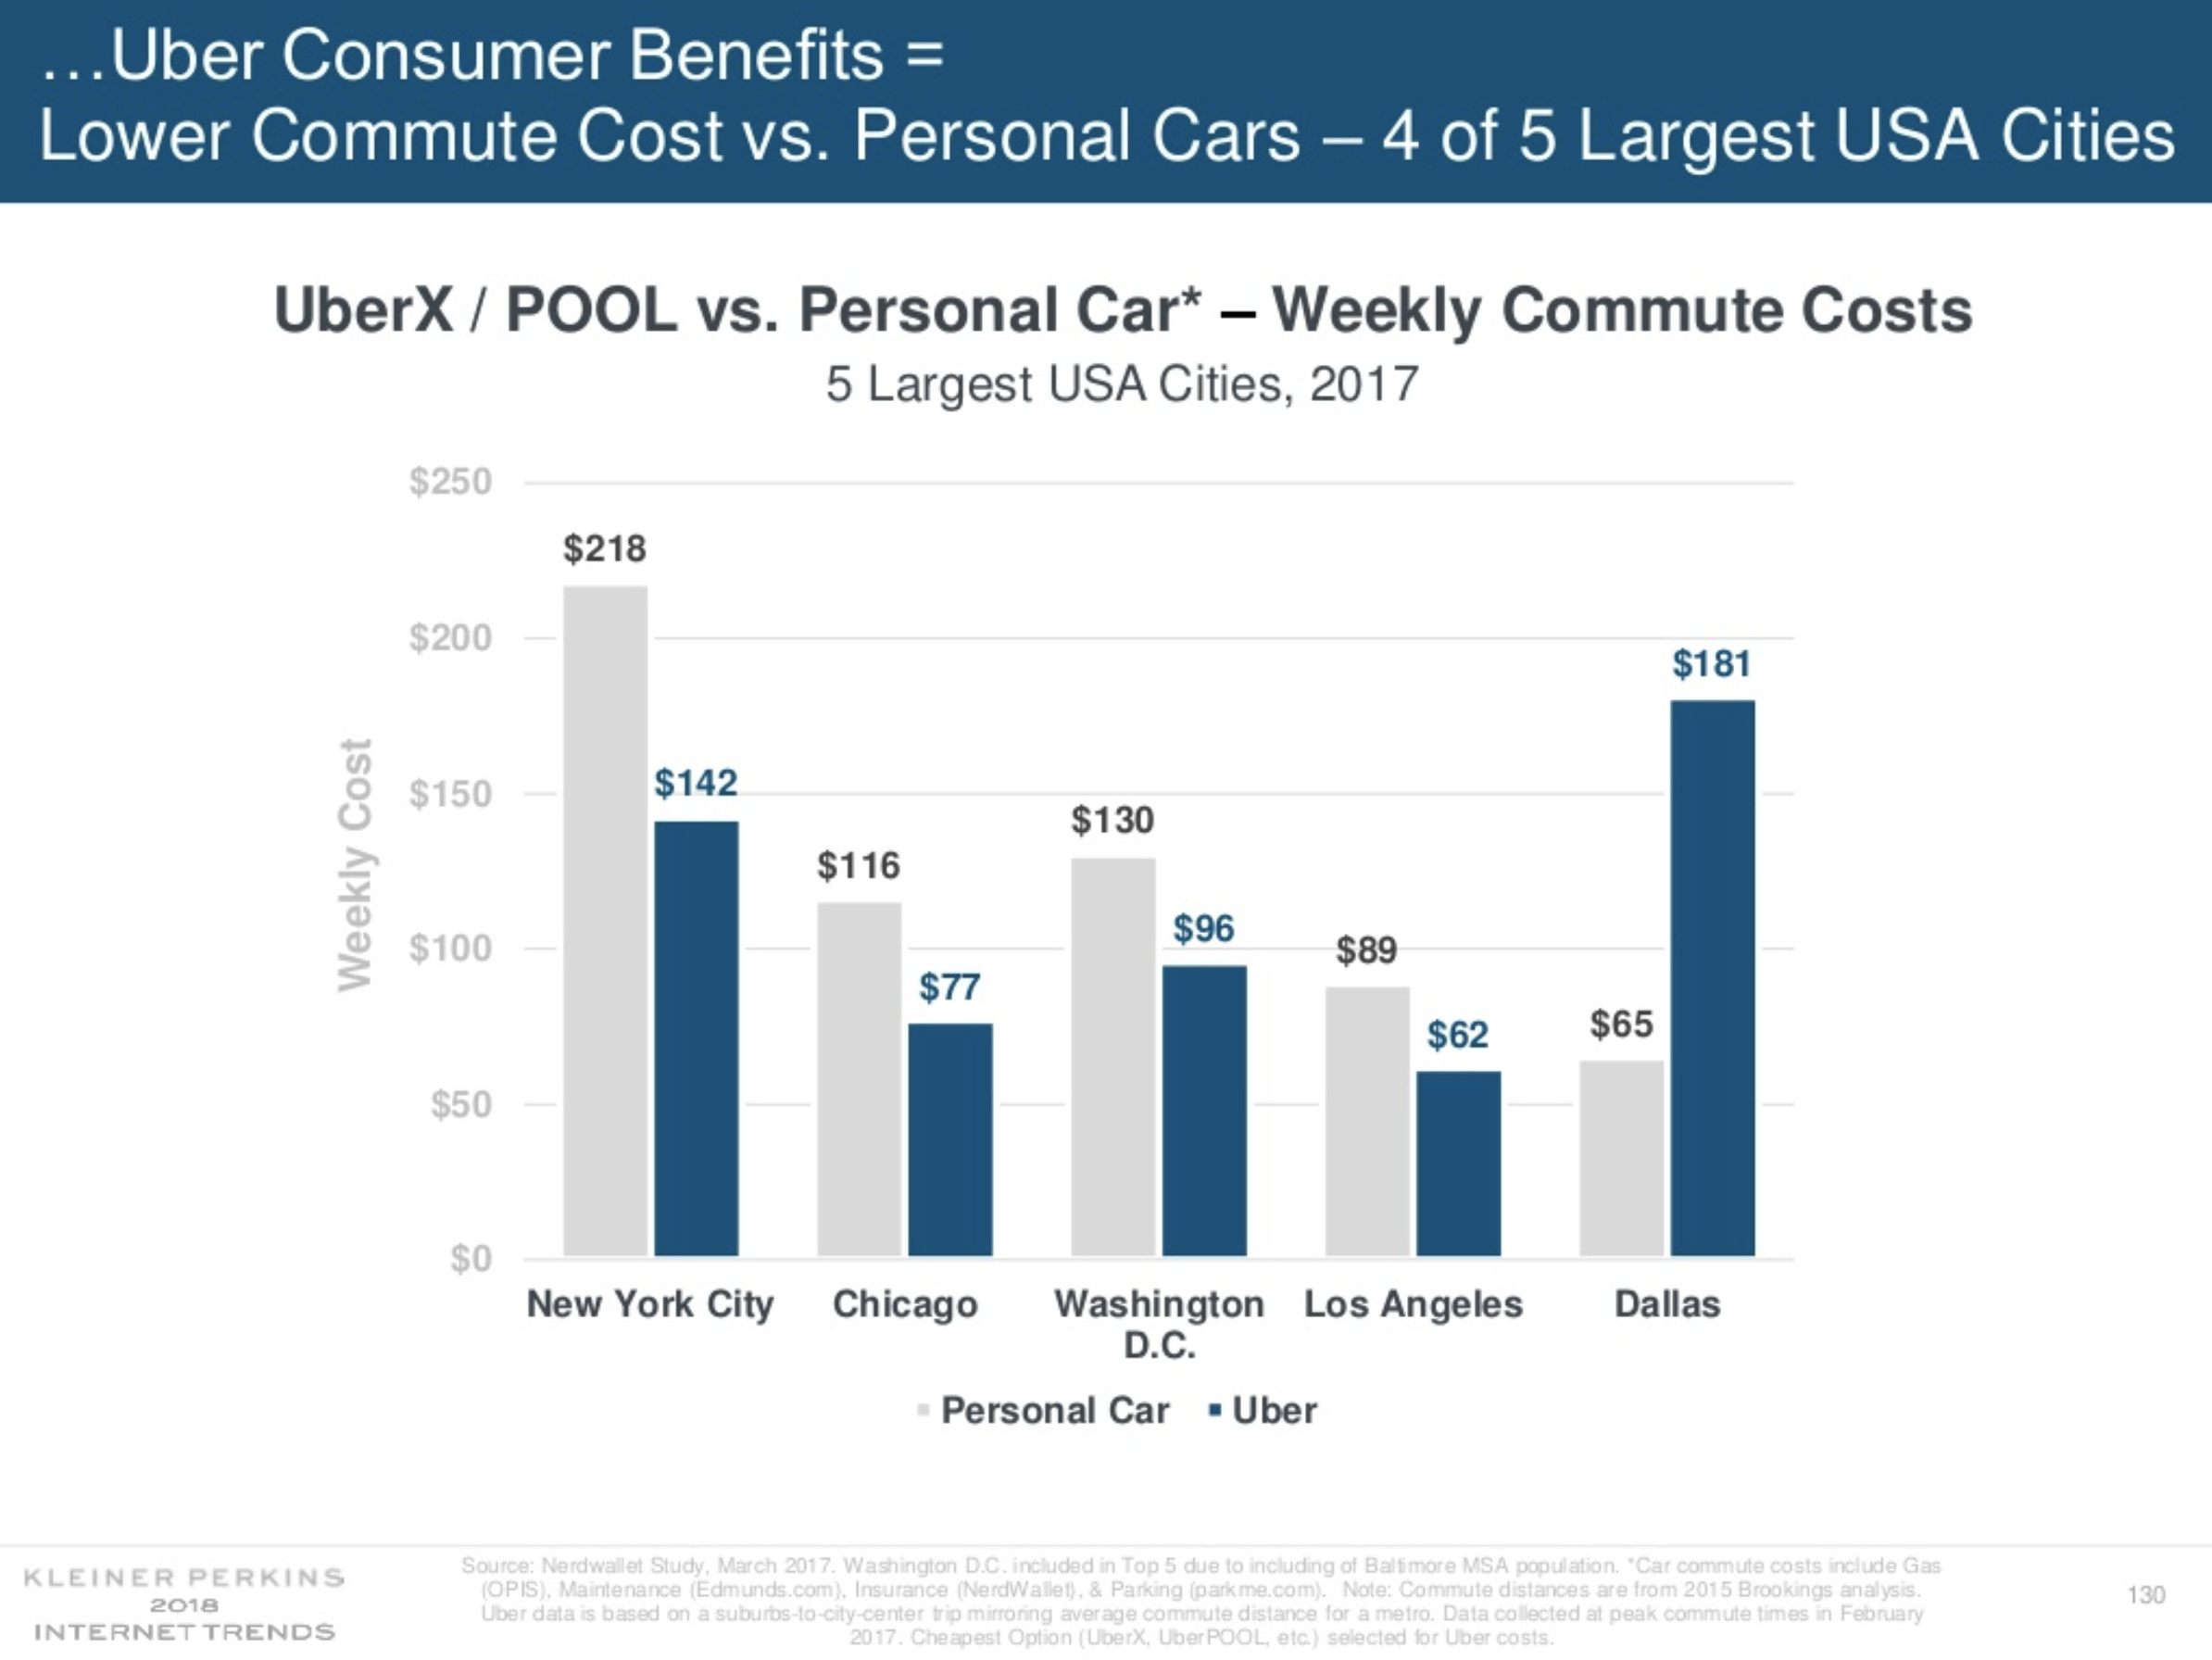 Here's where it's cheaper to take an Uber than to own a car